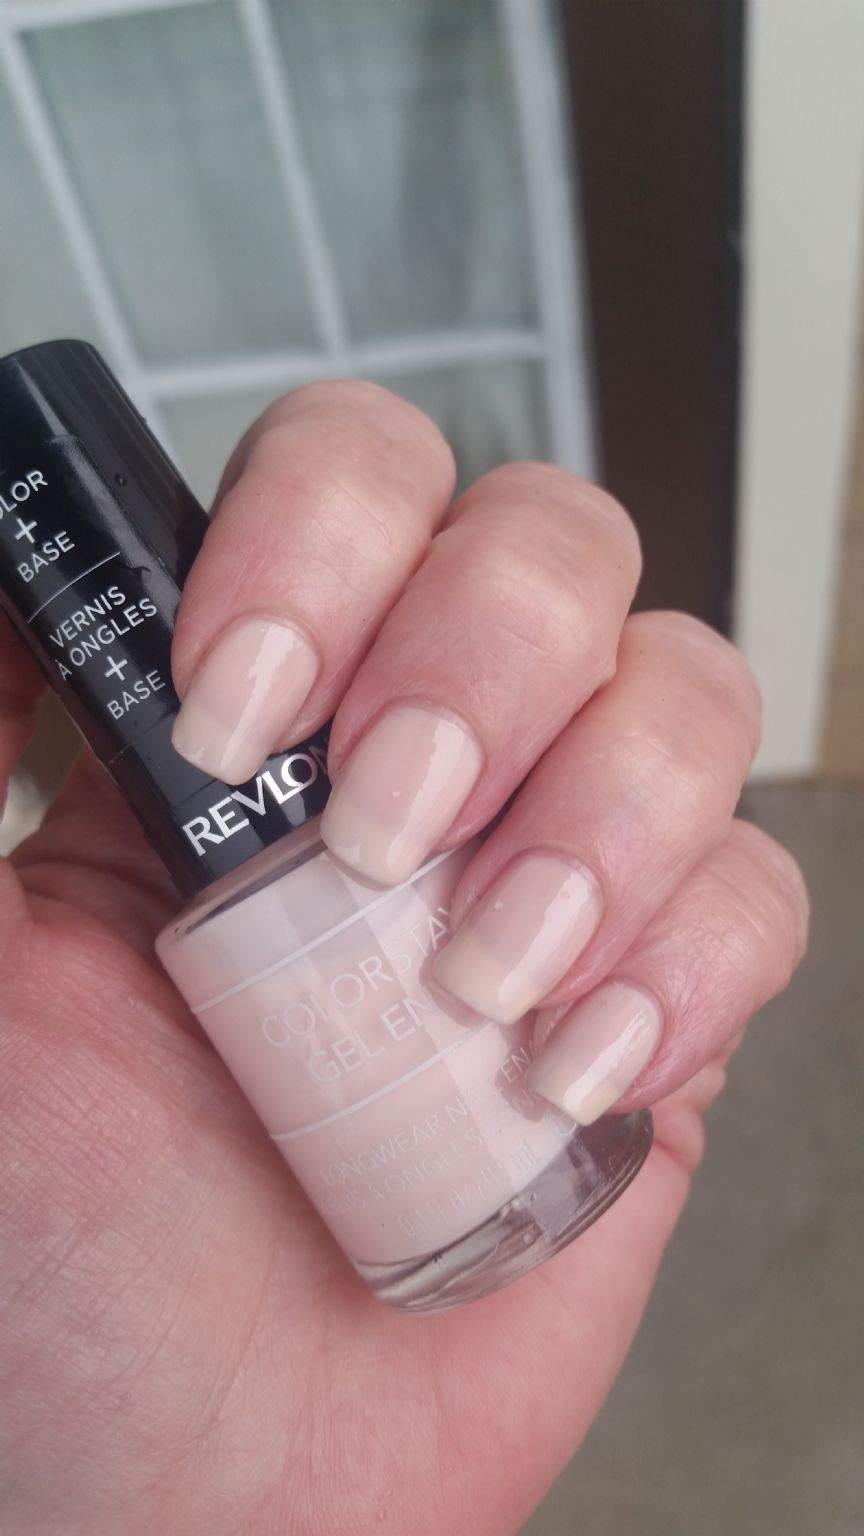 REVLON Up In Charms. Polishes